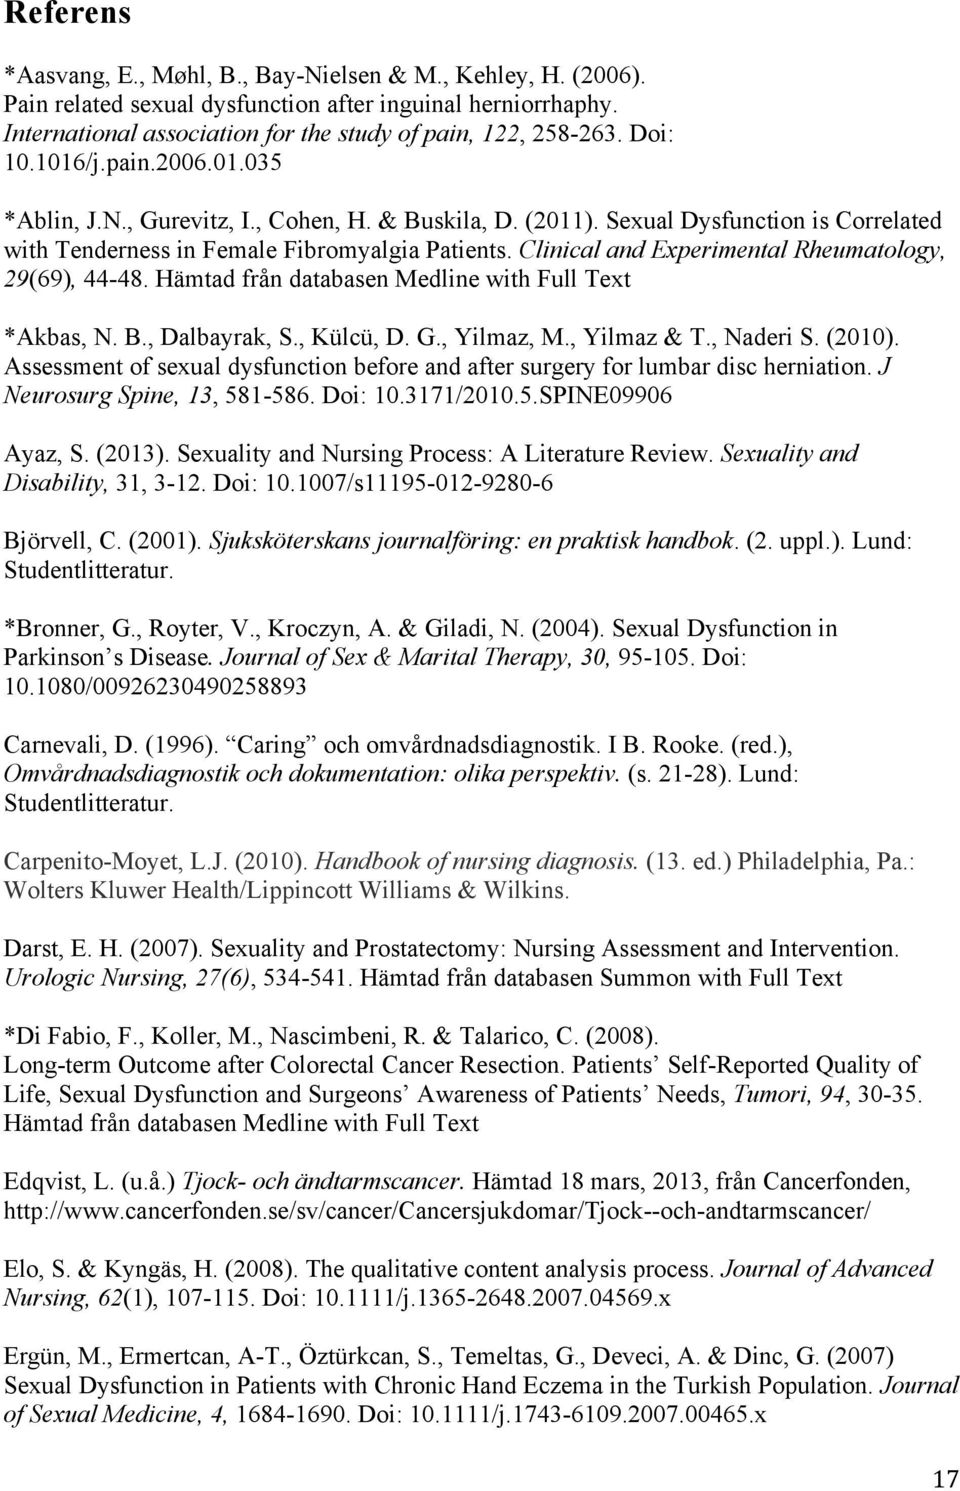 Clinical and Experimental Rheumatology, 29(69), 44-48. Hämtad från databasen Medline with Full Text *Akbas, N. B., Dalbayrak, S., Külcü, D. G., Yilmaz, M., Yilmaz & T., Naderi S. (2010).